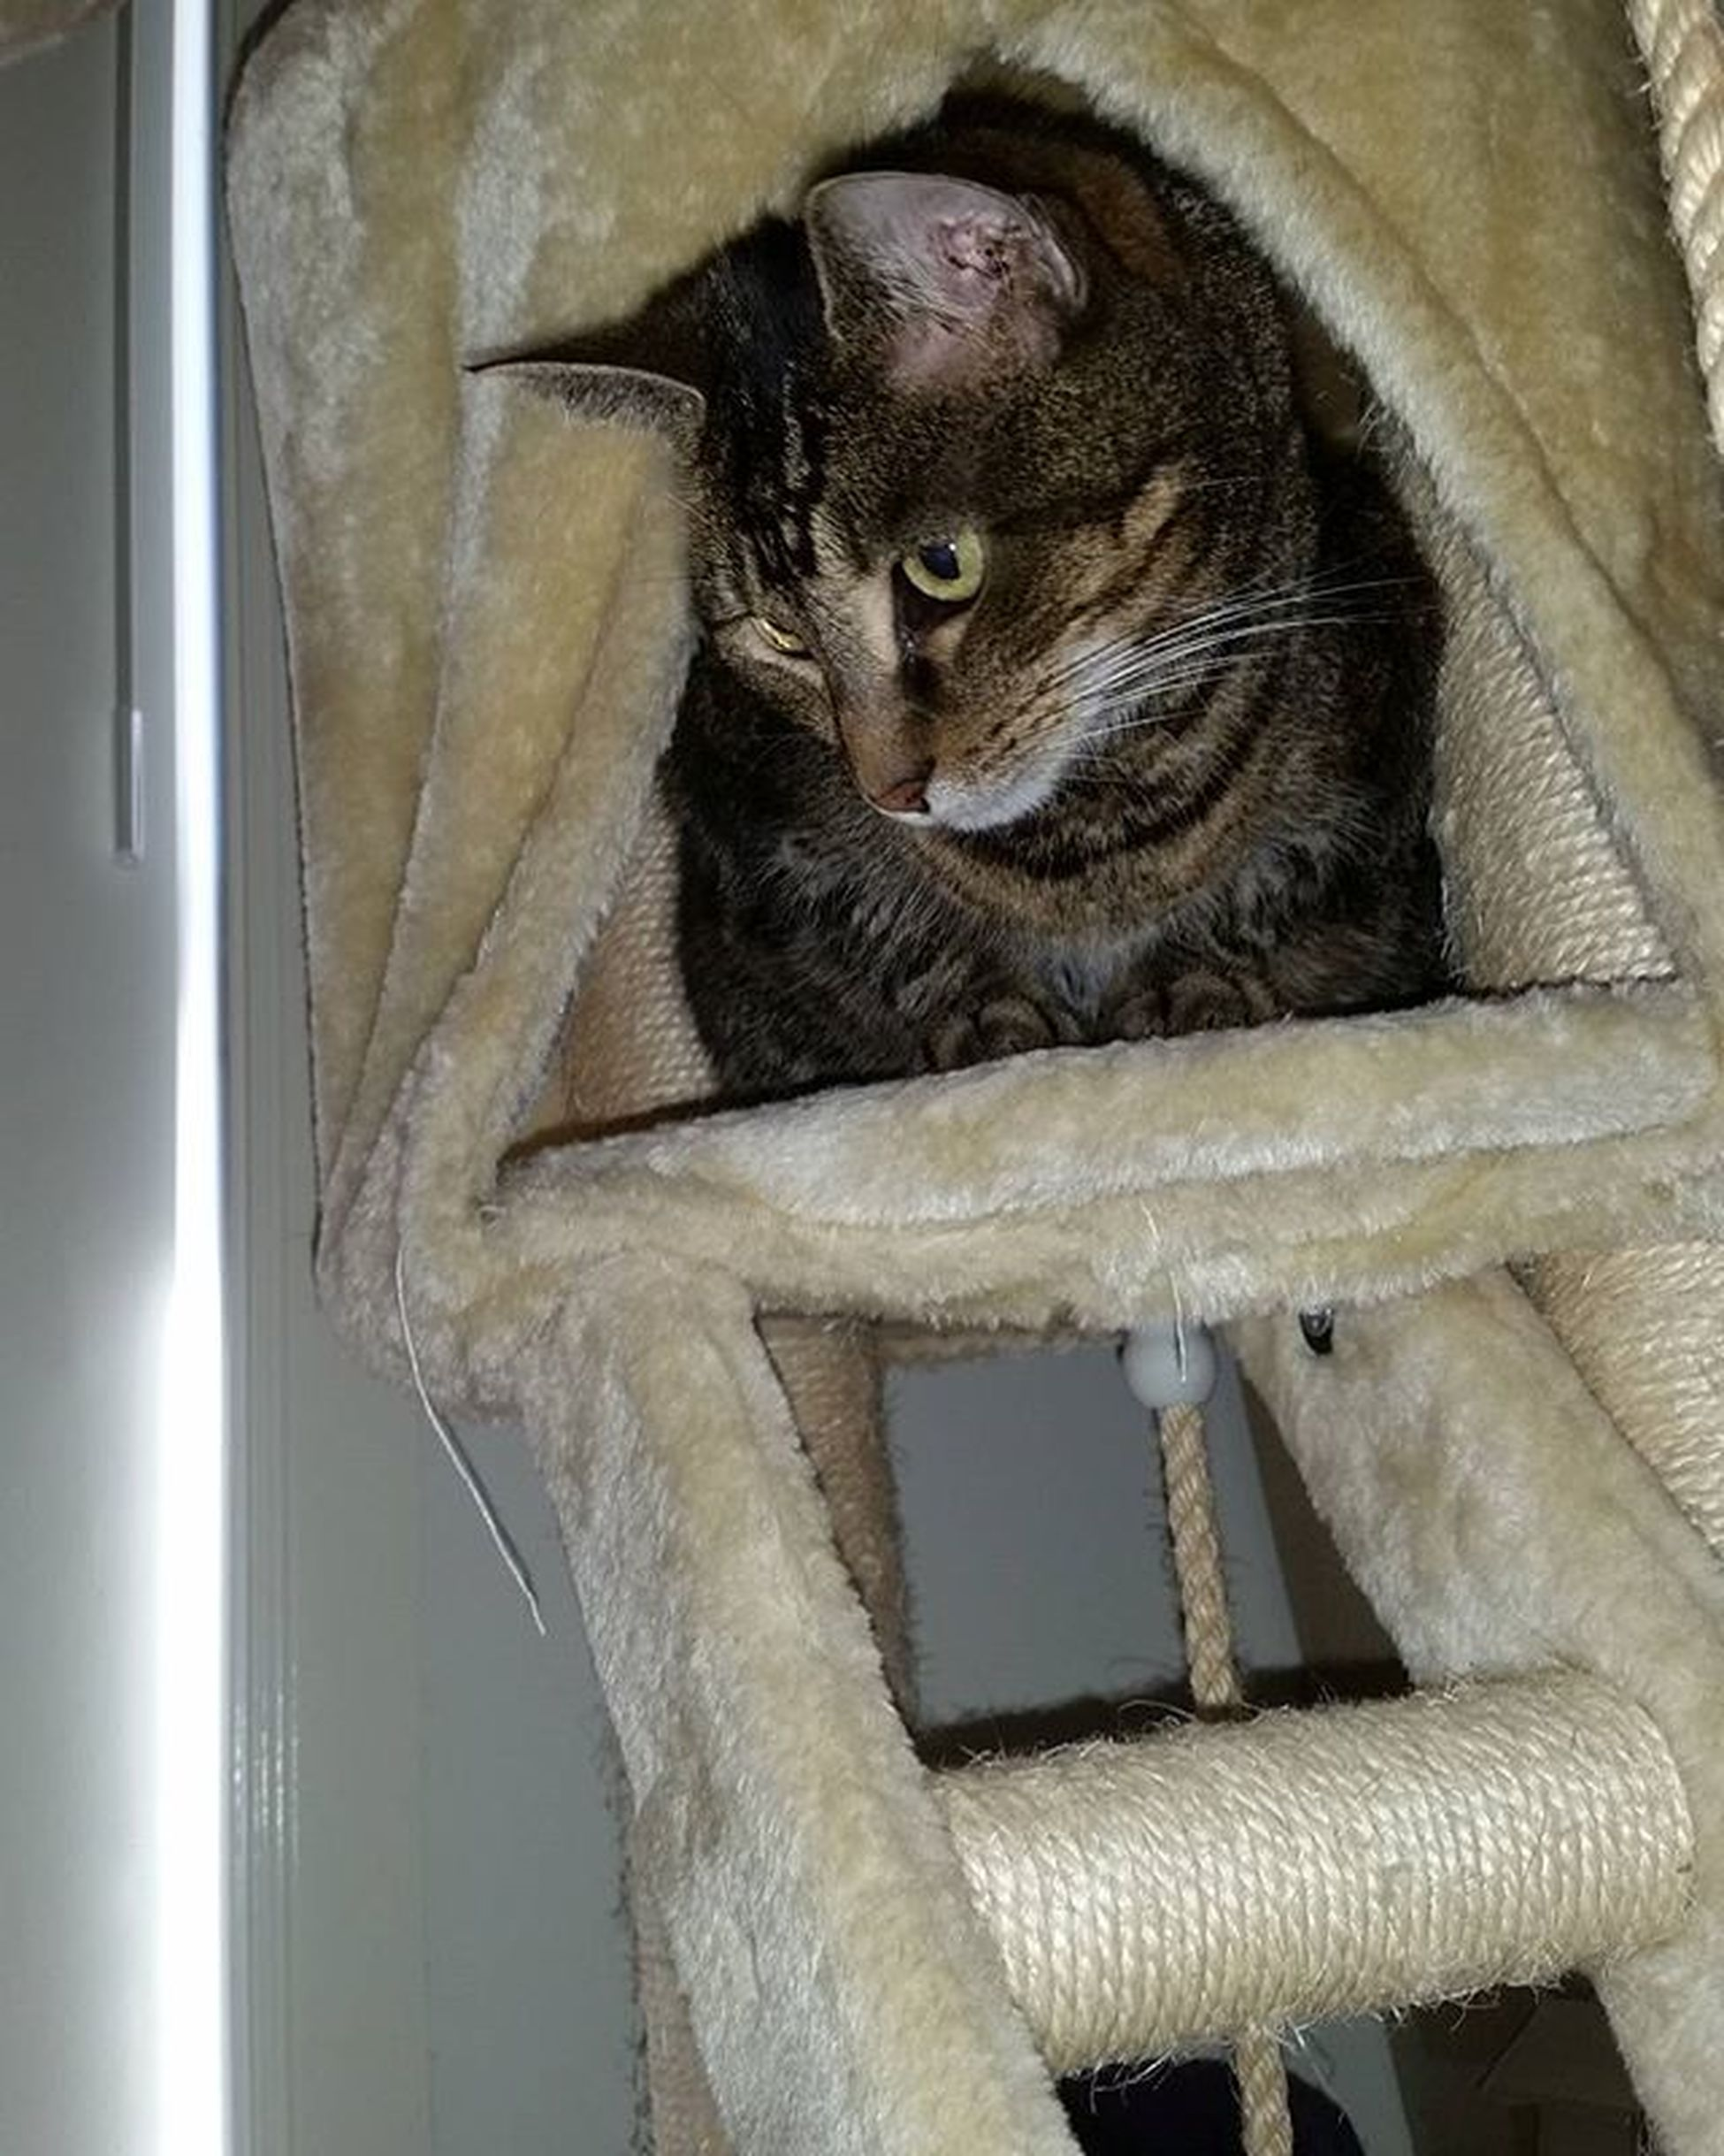 Xena wasn't as chill about it. She just kept looking for a way down. Lol Australia Australianliving Home Happy Cat Catsofinstagram Xena Selfie Catselfie Ikillyou Mylife Socute Cattower Catscratcher